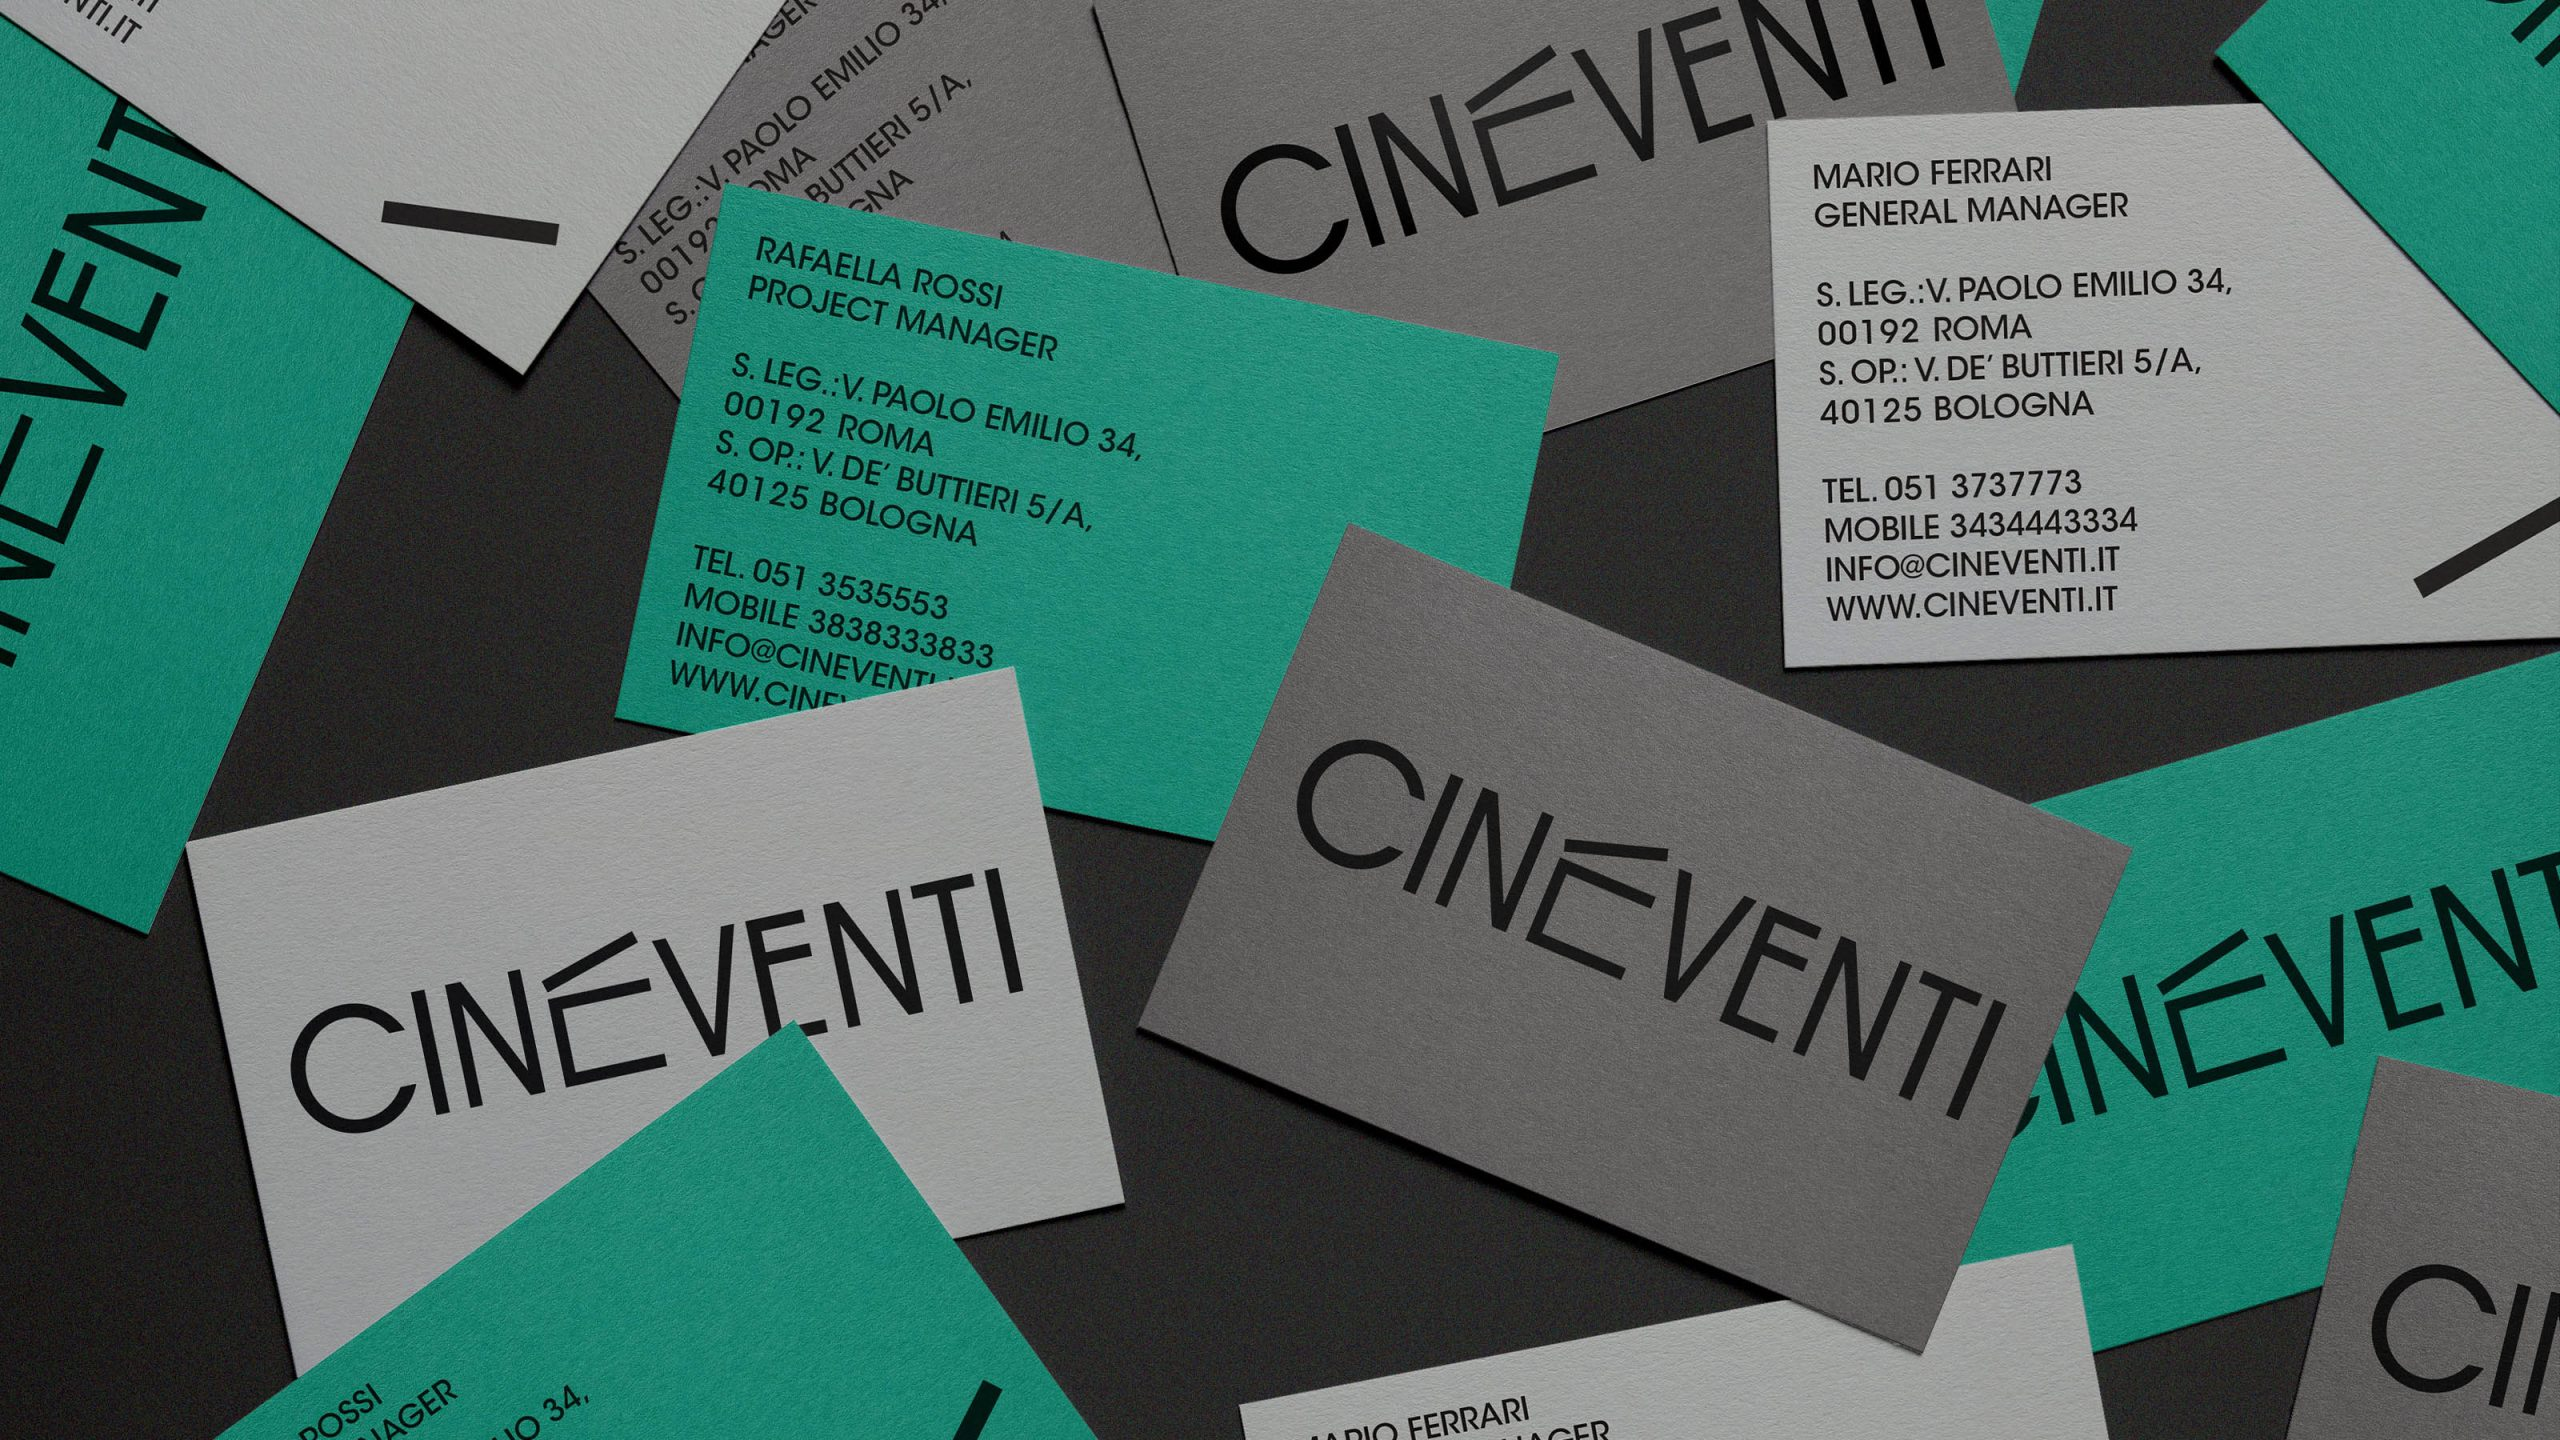 Brand refresh for Cineventi<br />Logo, visual system and stationary desing